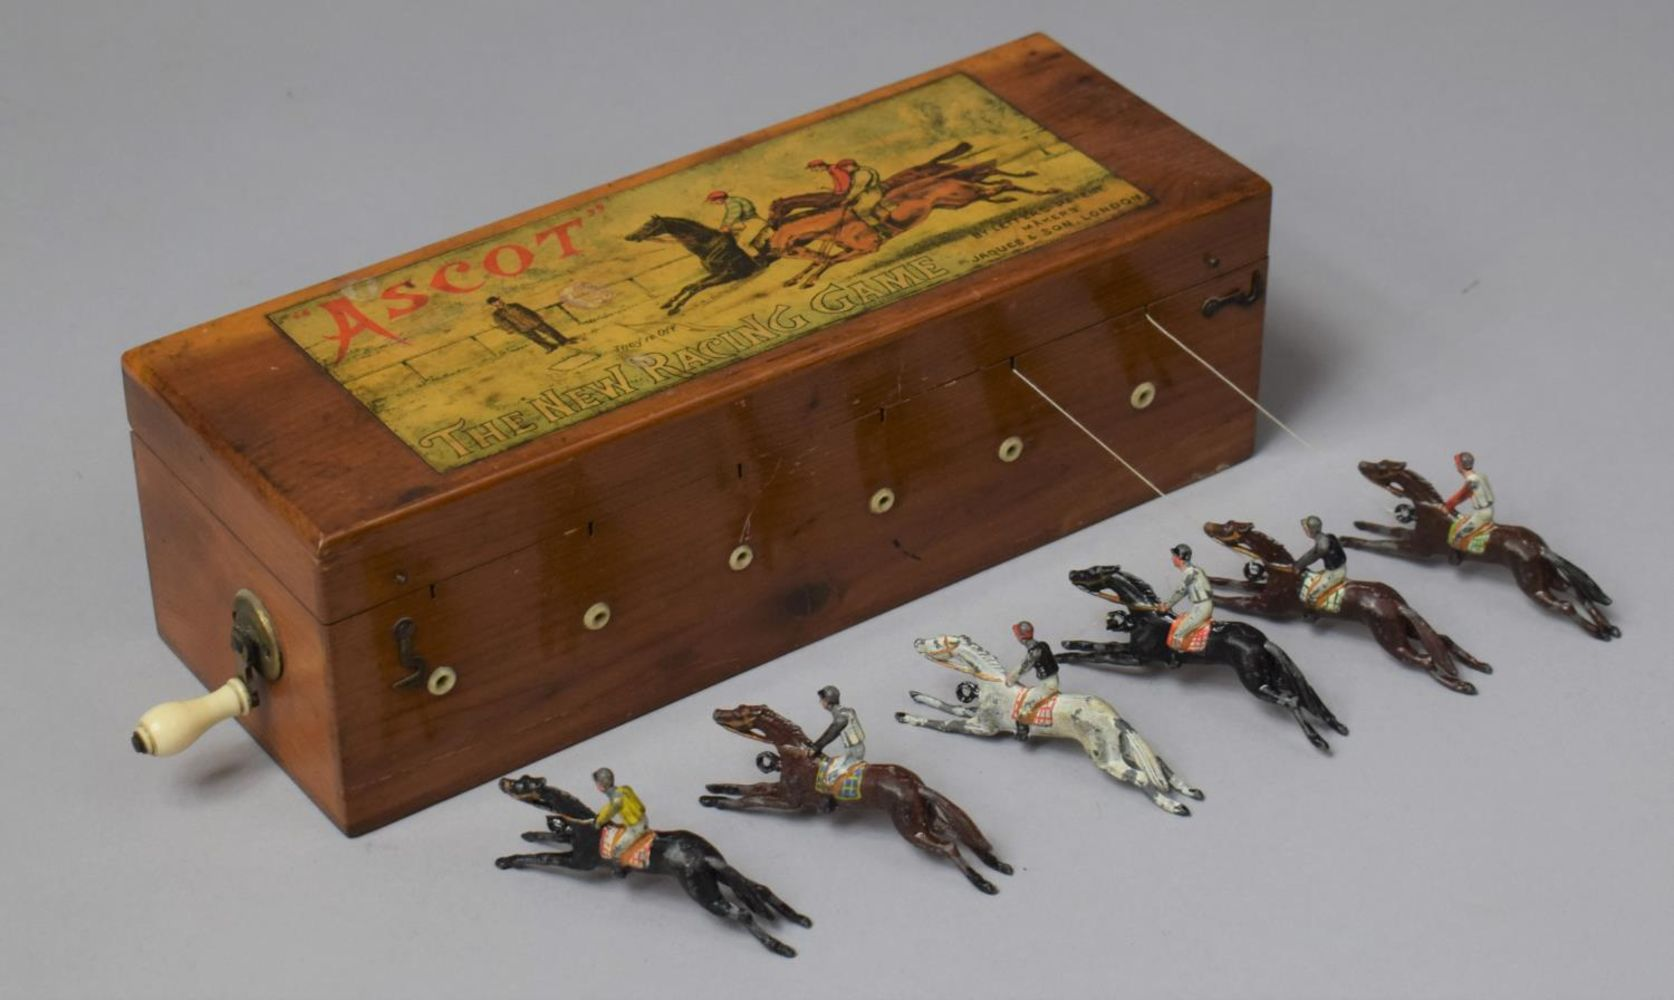 Collectables and General - Brettells Auctioneers & Valuers